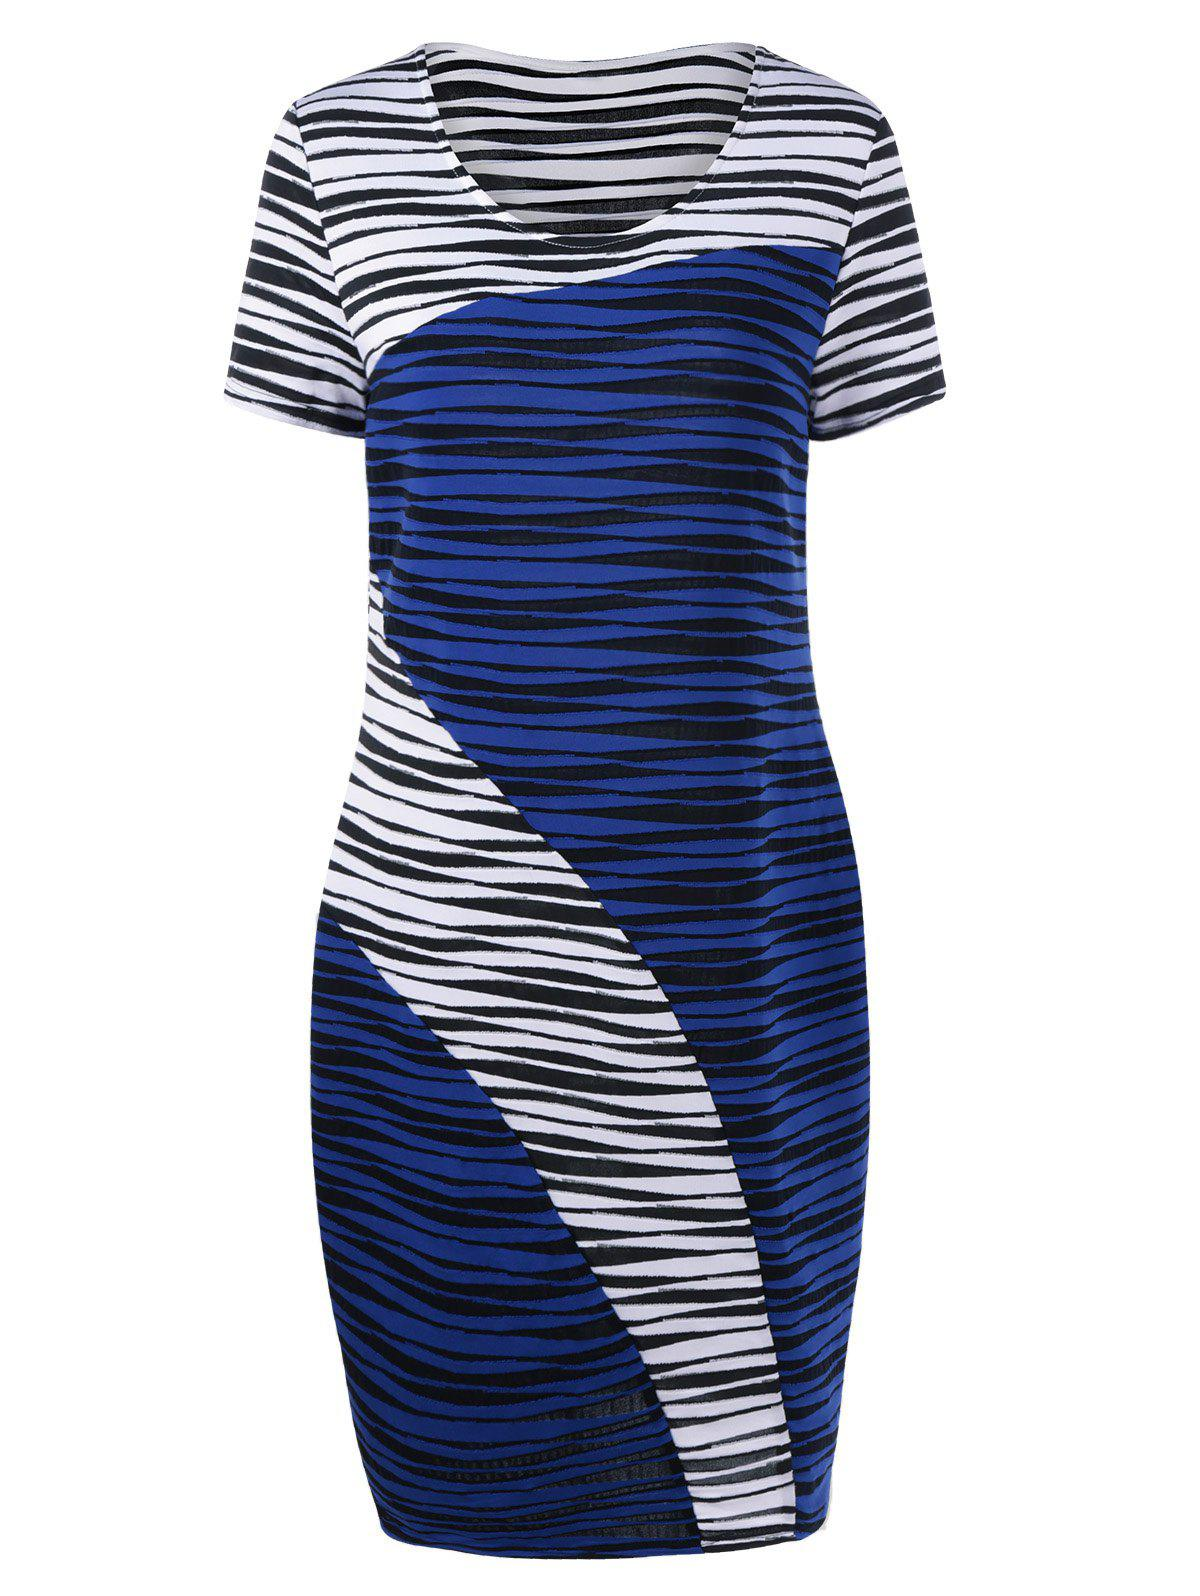 Plus Size Striped Knee Length Tight Dress - BLUE/WHITE 5XL